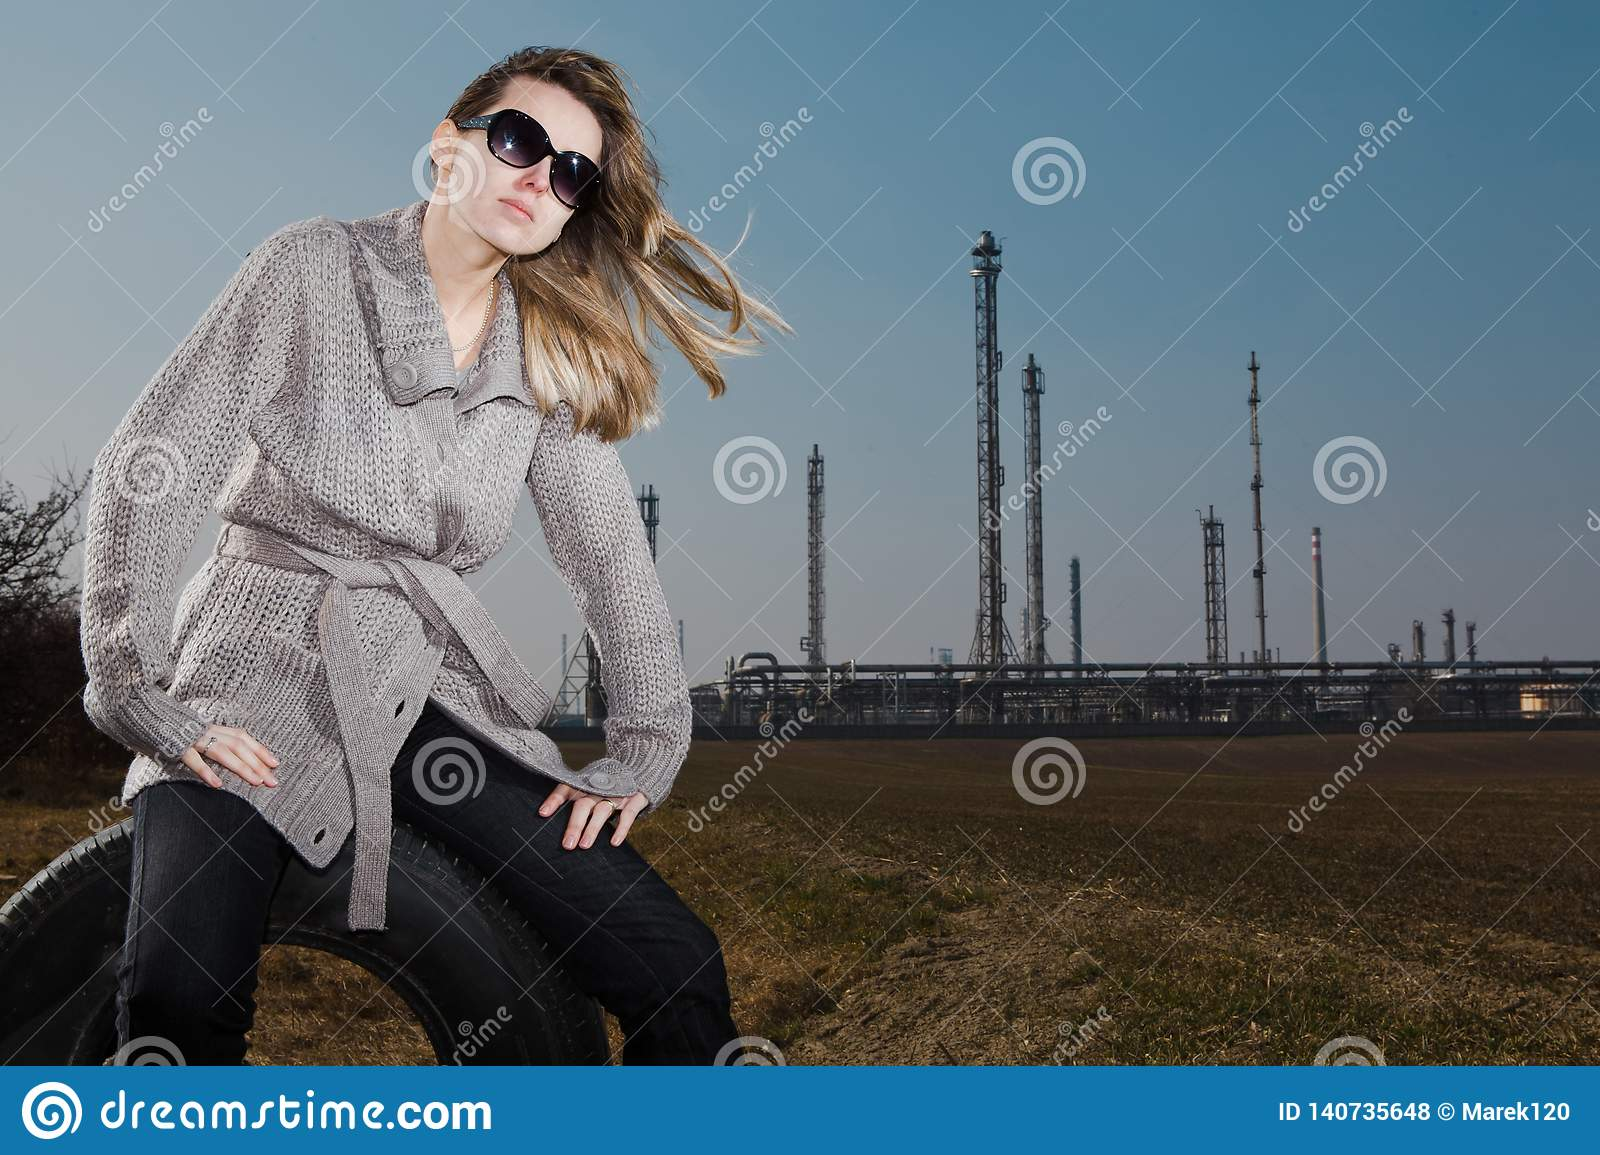 Woman sitting on used tire - Natural skin with no retouches